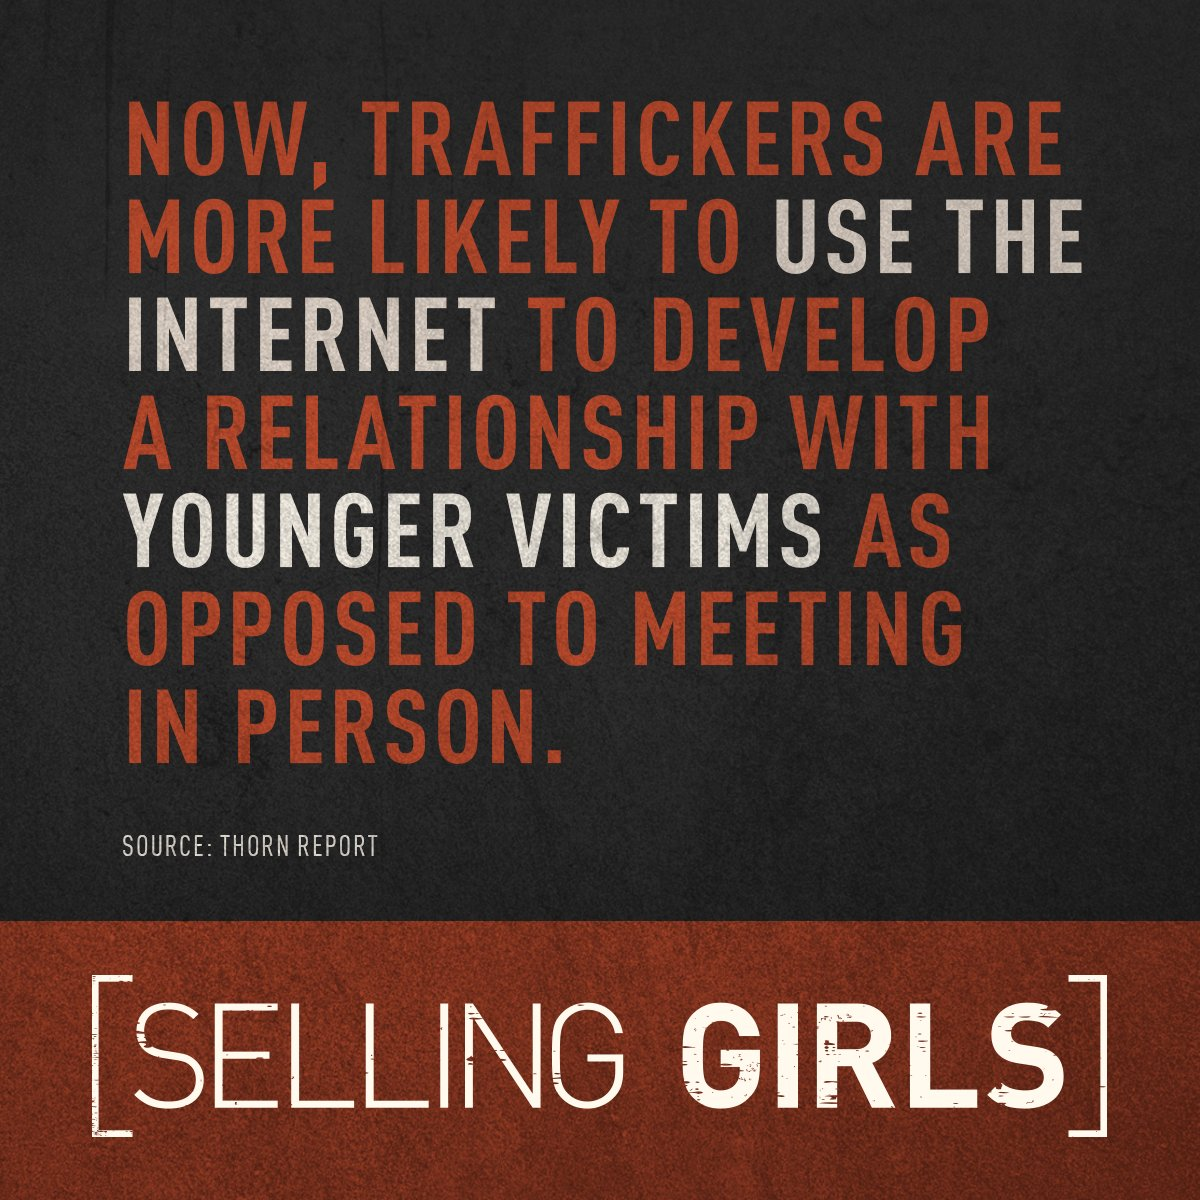 Selling Girls | Sex traffickers are targeting American children